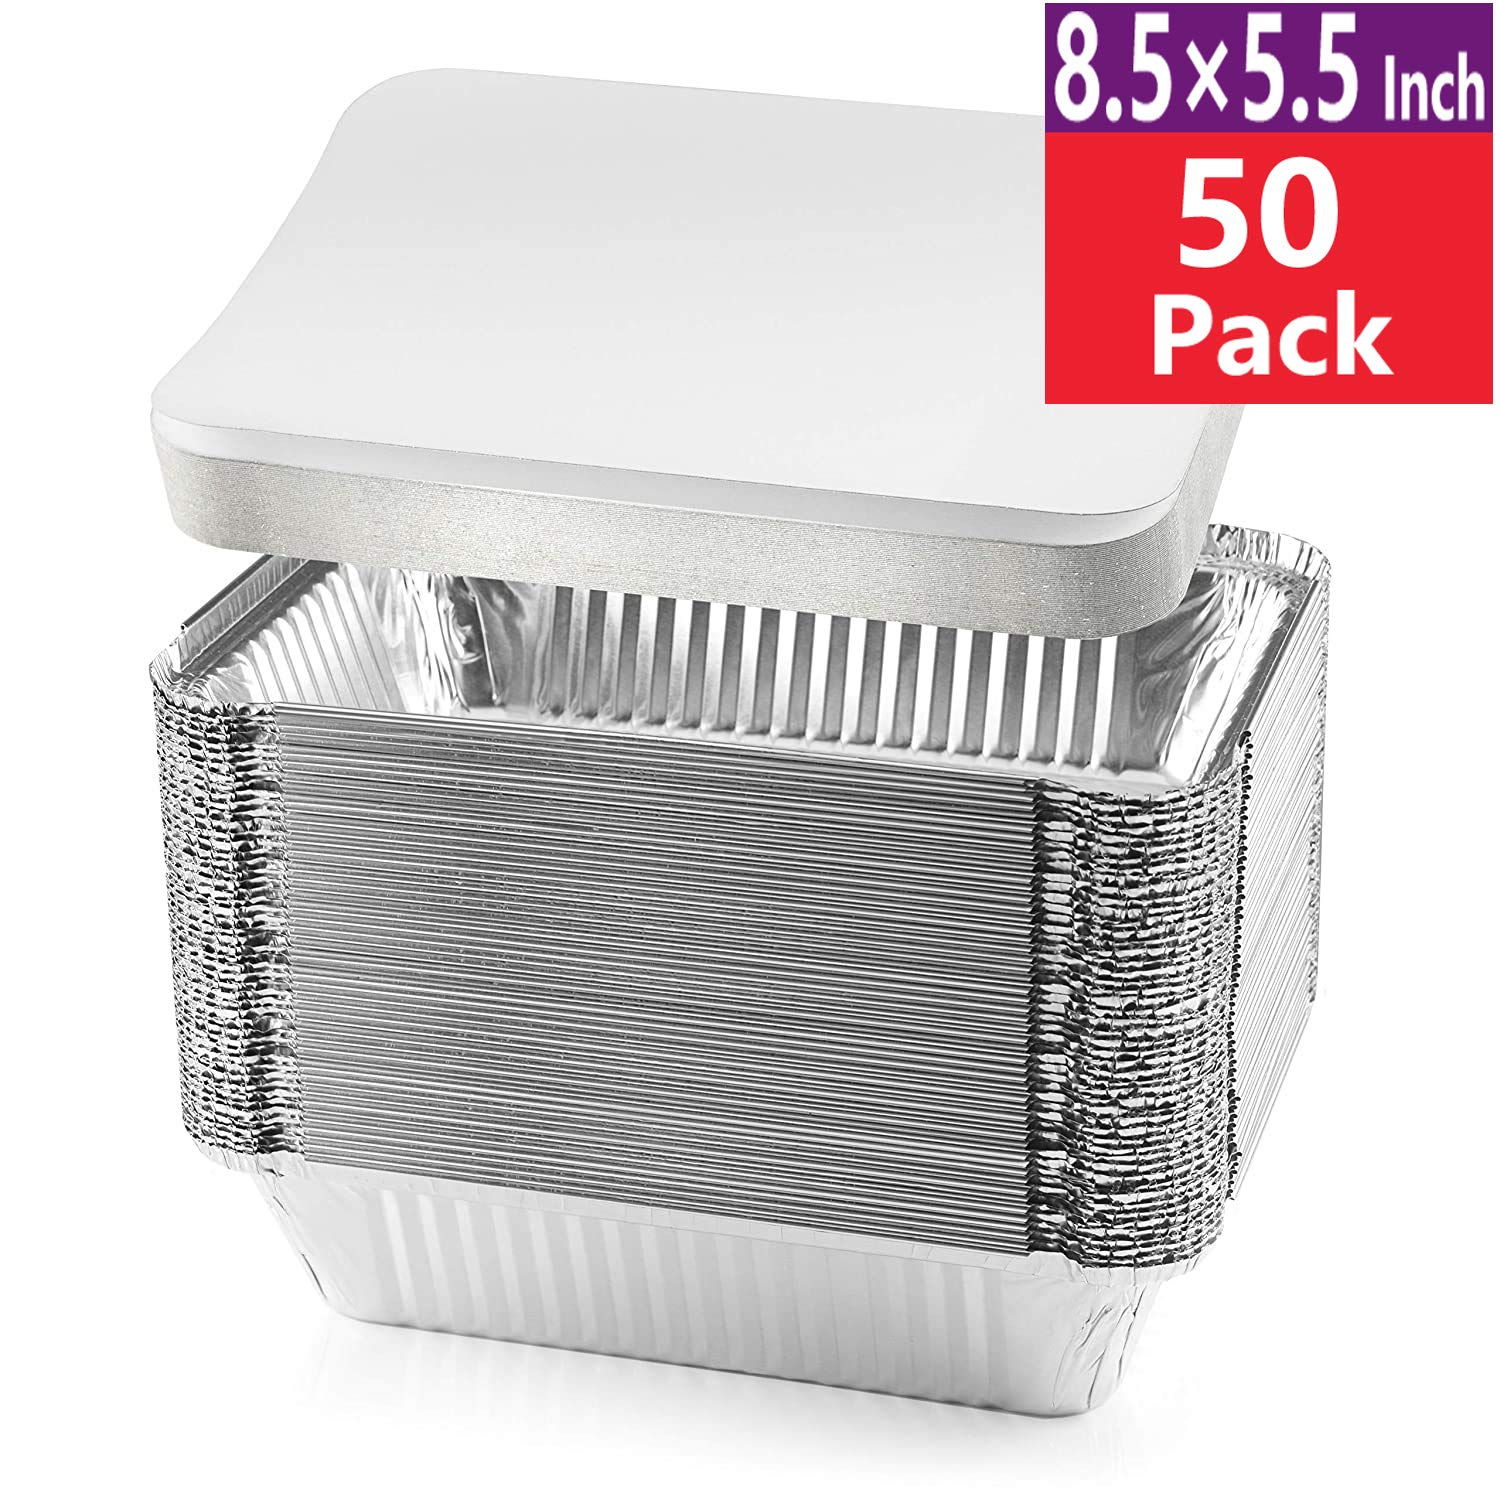 "8.5×5.5"" Inch 50 Pack of Disposable Takeout Pans with Lids –2 Lb Capacity Aluminum Foil Food Containers Safe for use in Freezer, Oven, and steam Table. – Strong Seal for Freshness - by Lsshao"